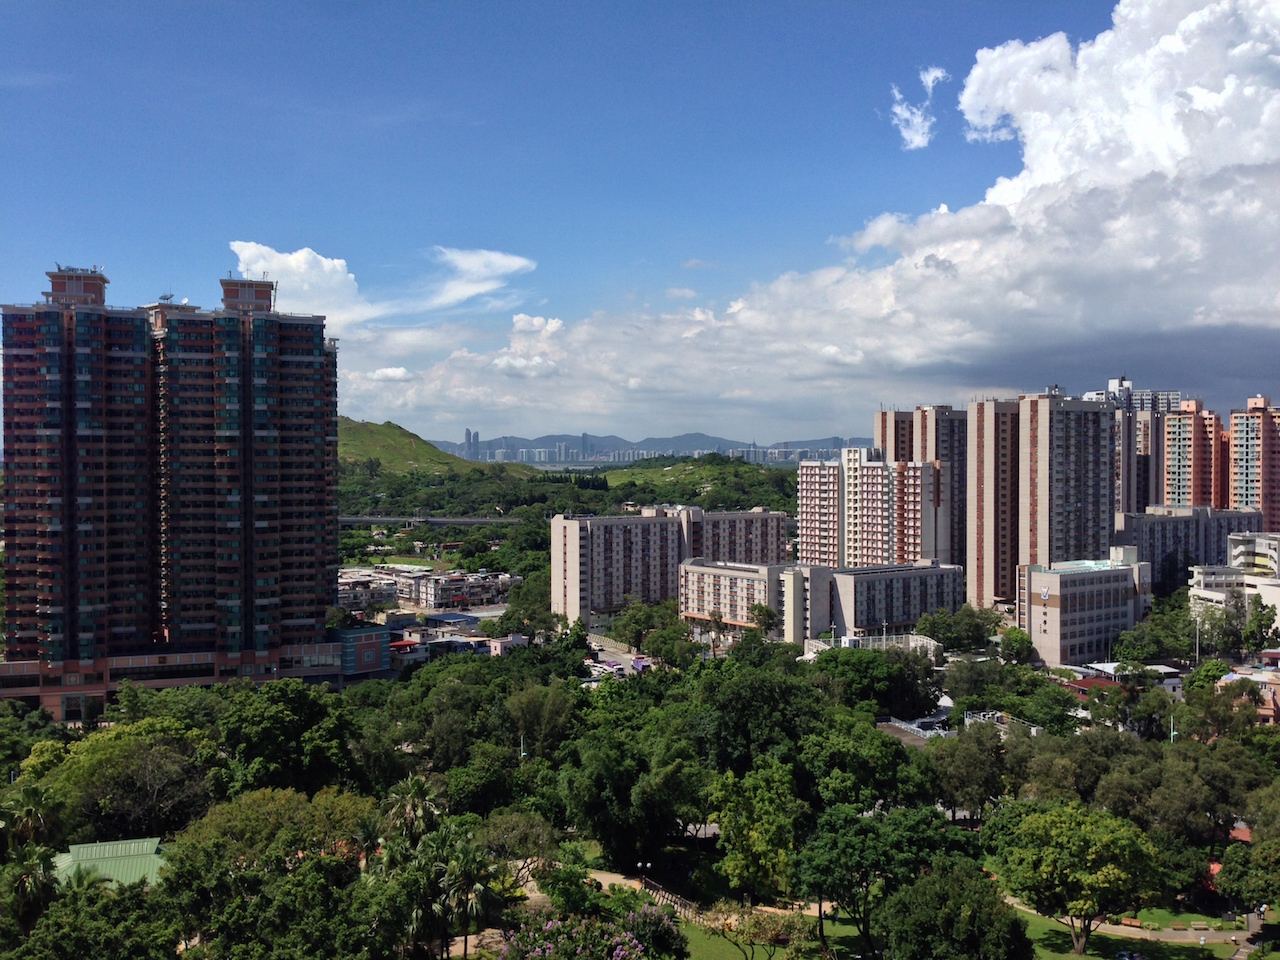 View from Yuen Long Park pagoda - Shenzhen in the distance